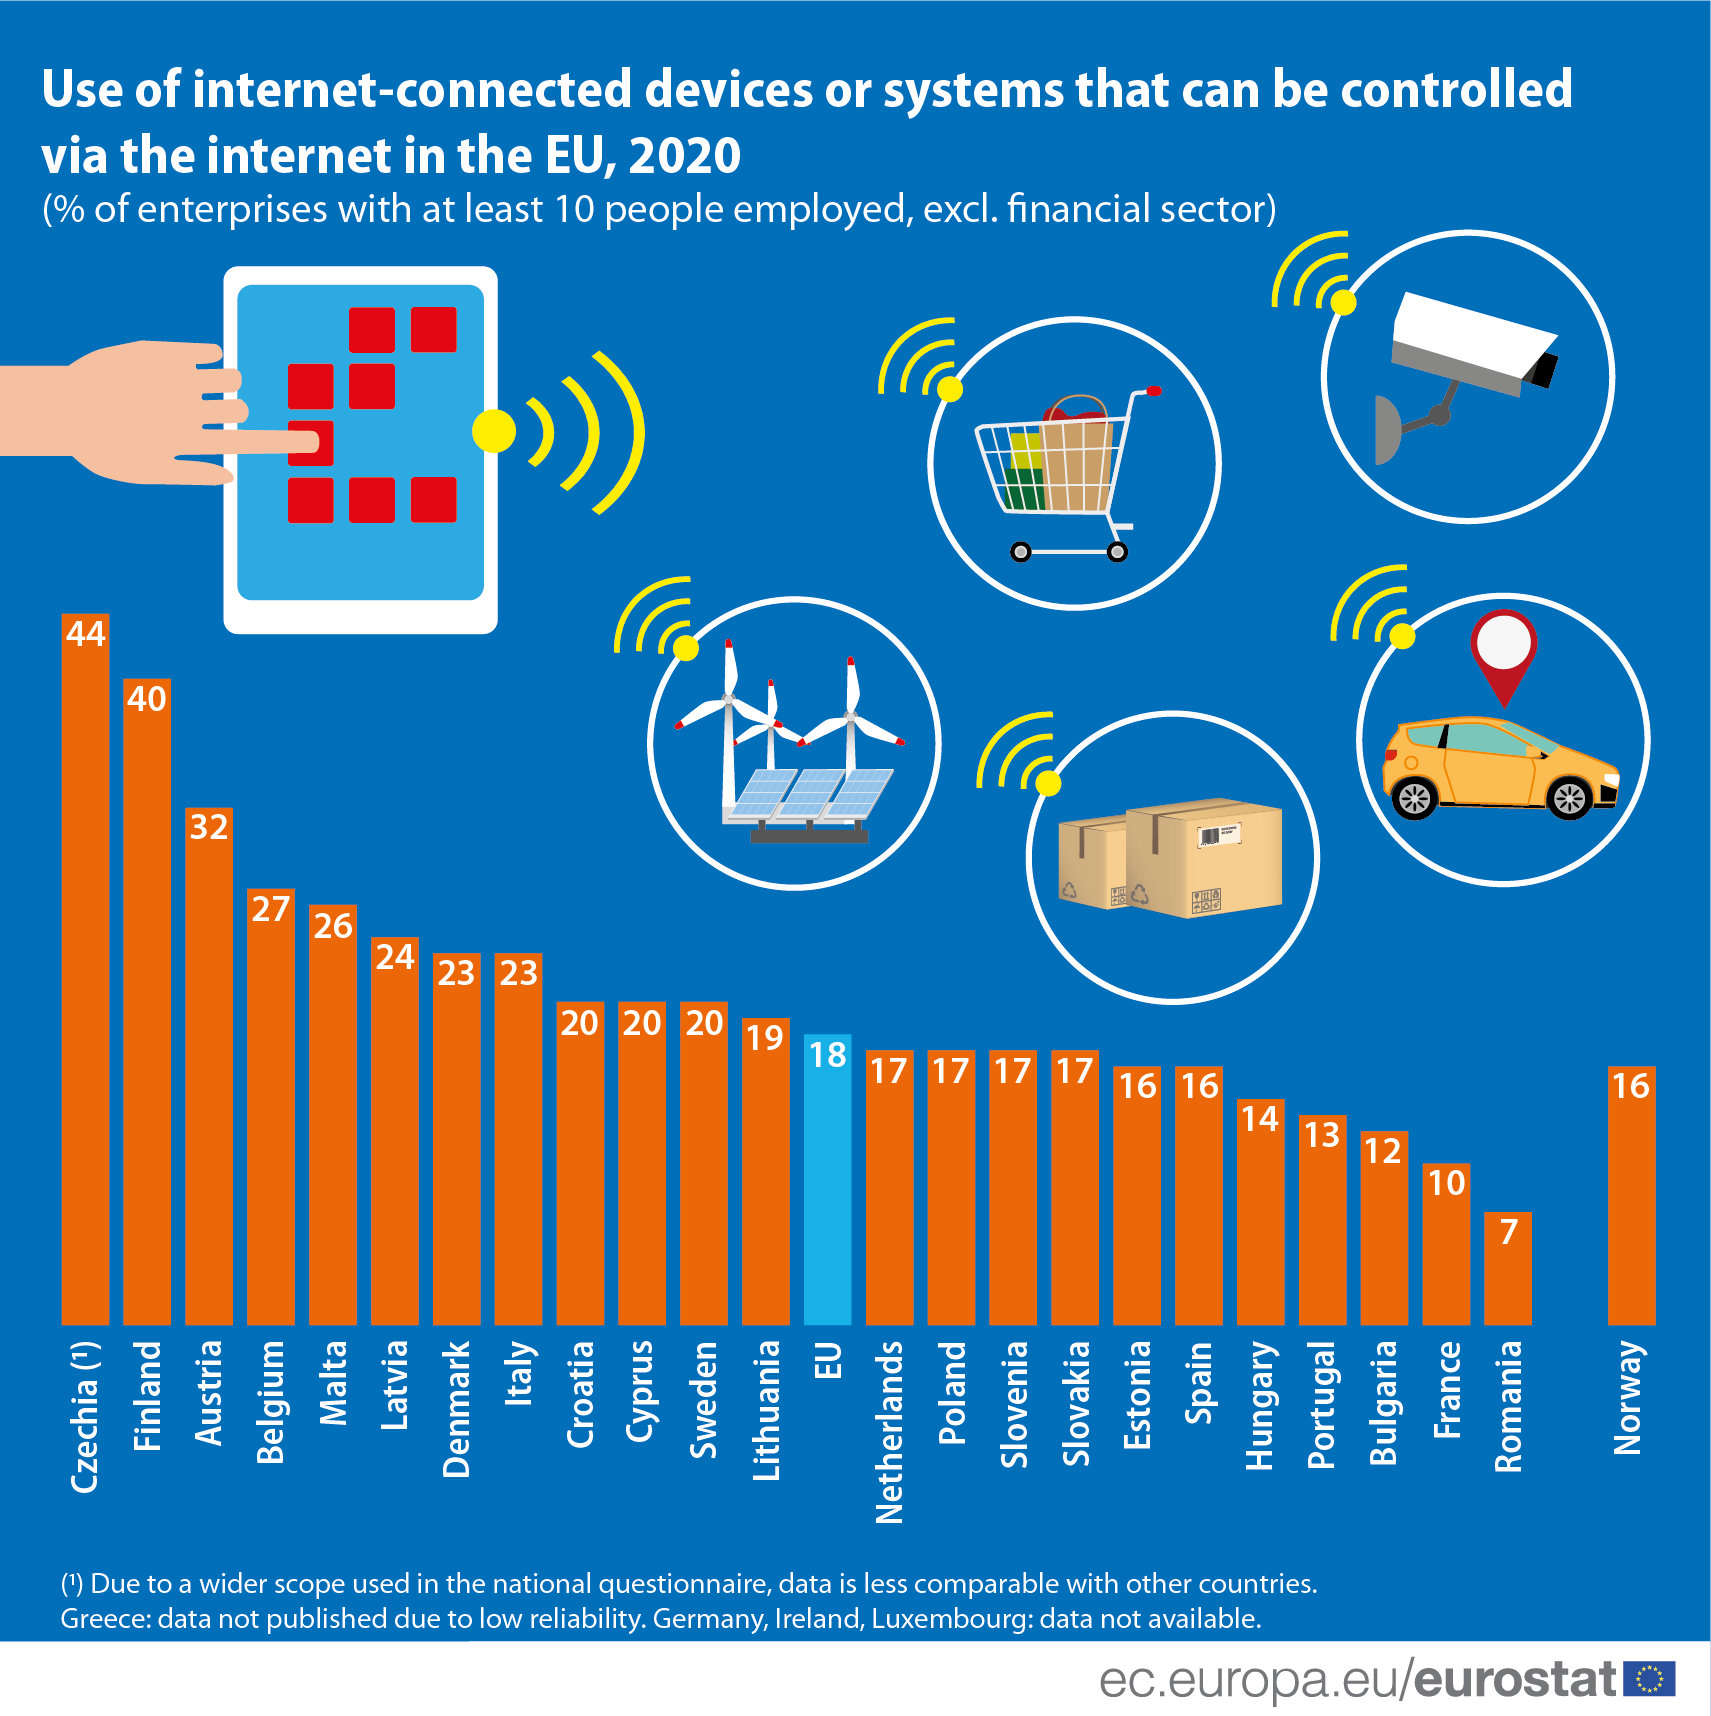 Infographic: Internet of things use by EU businesses